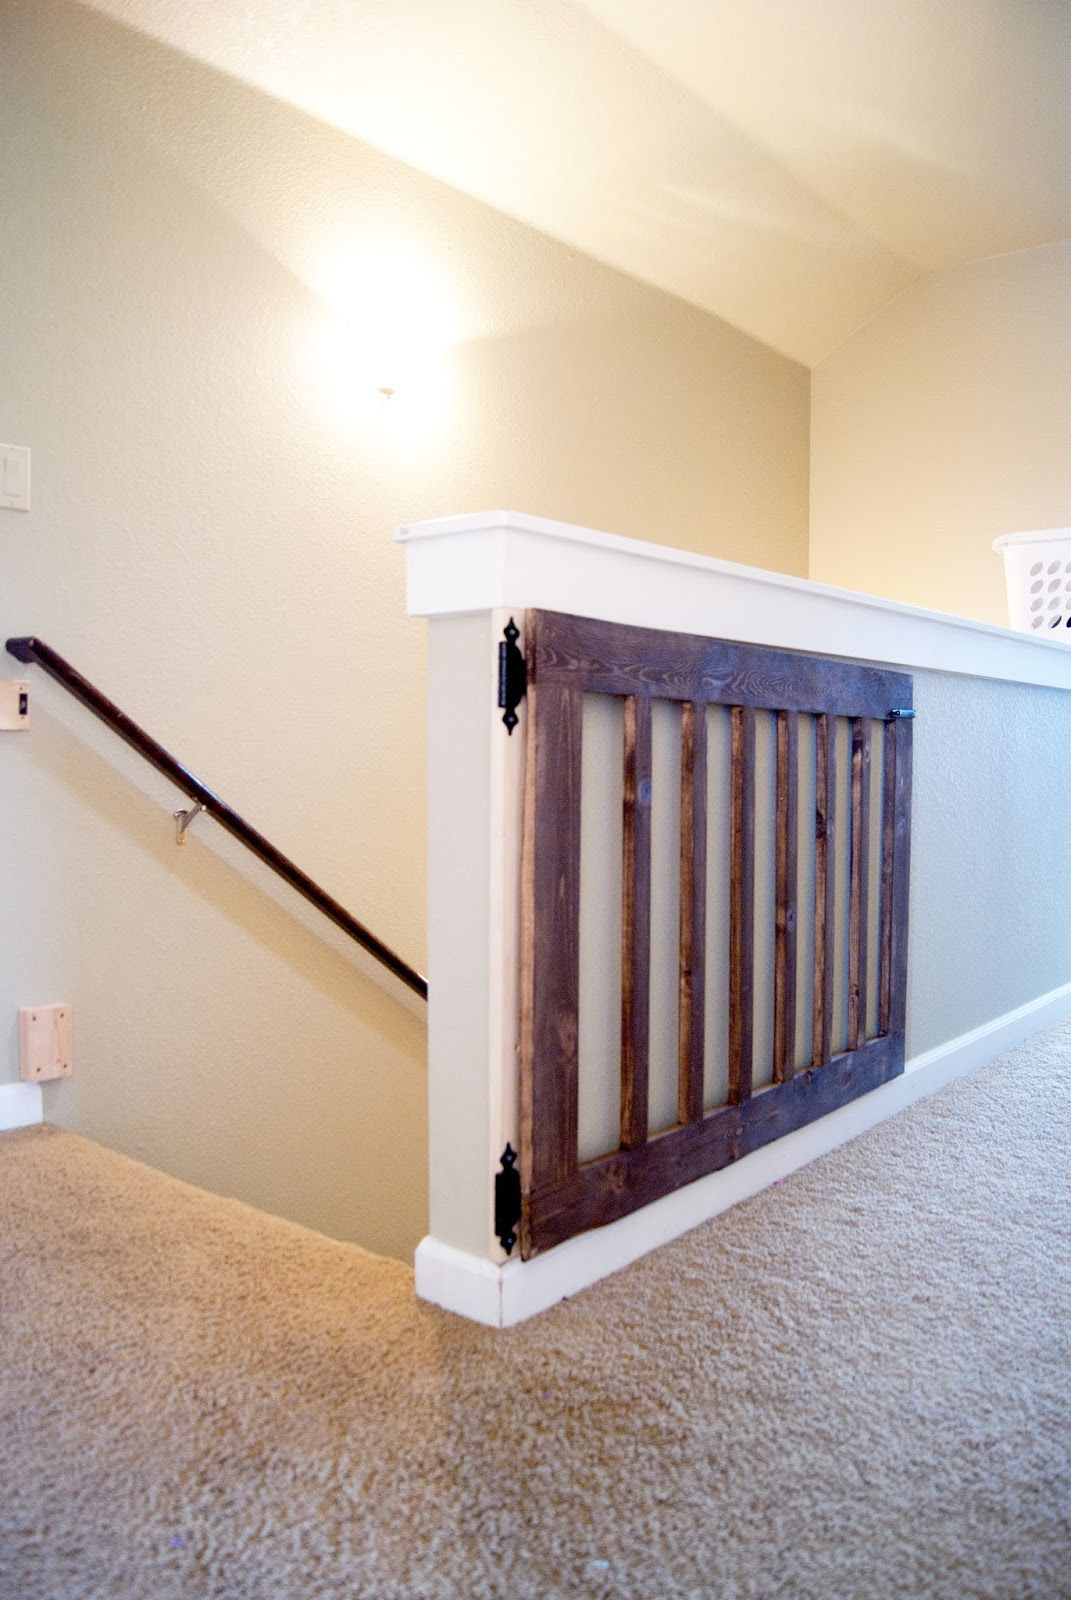 Amazing Custom Baby Gate